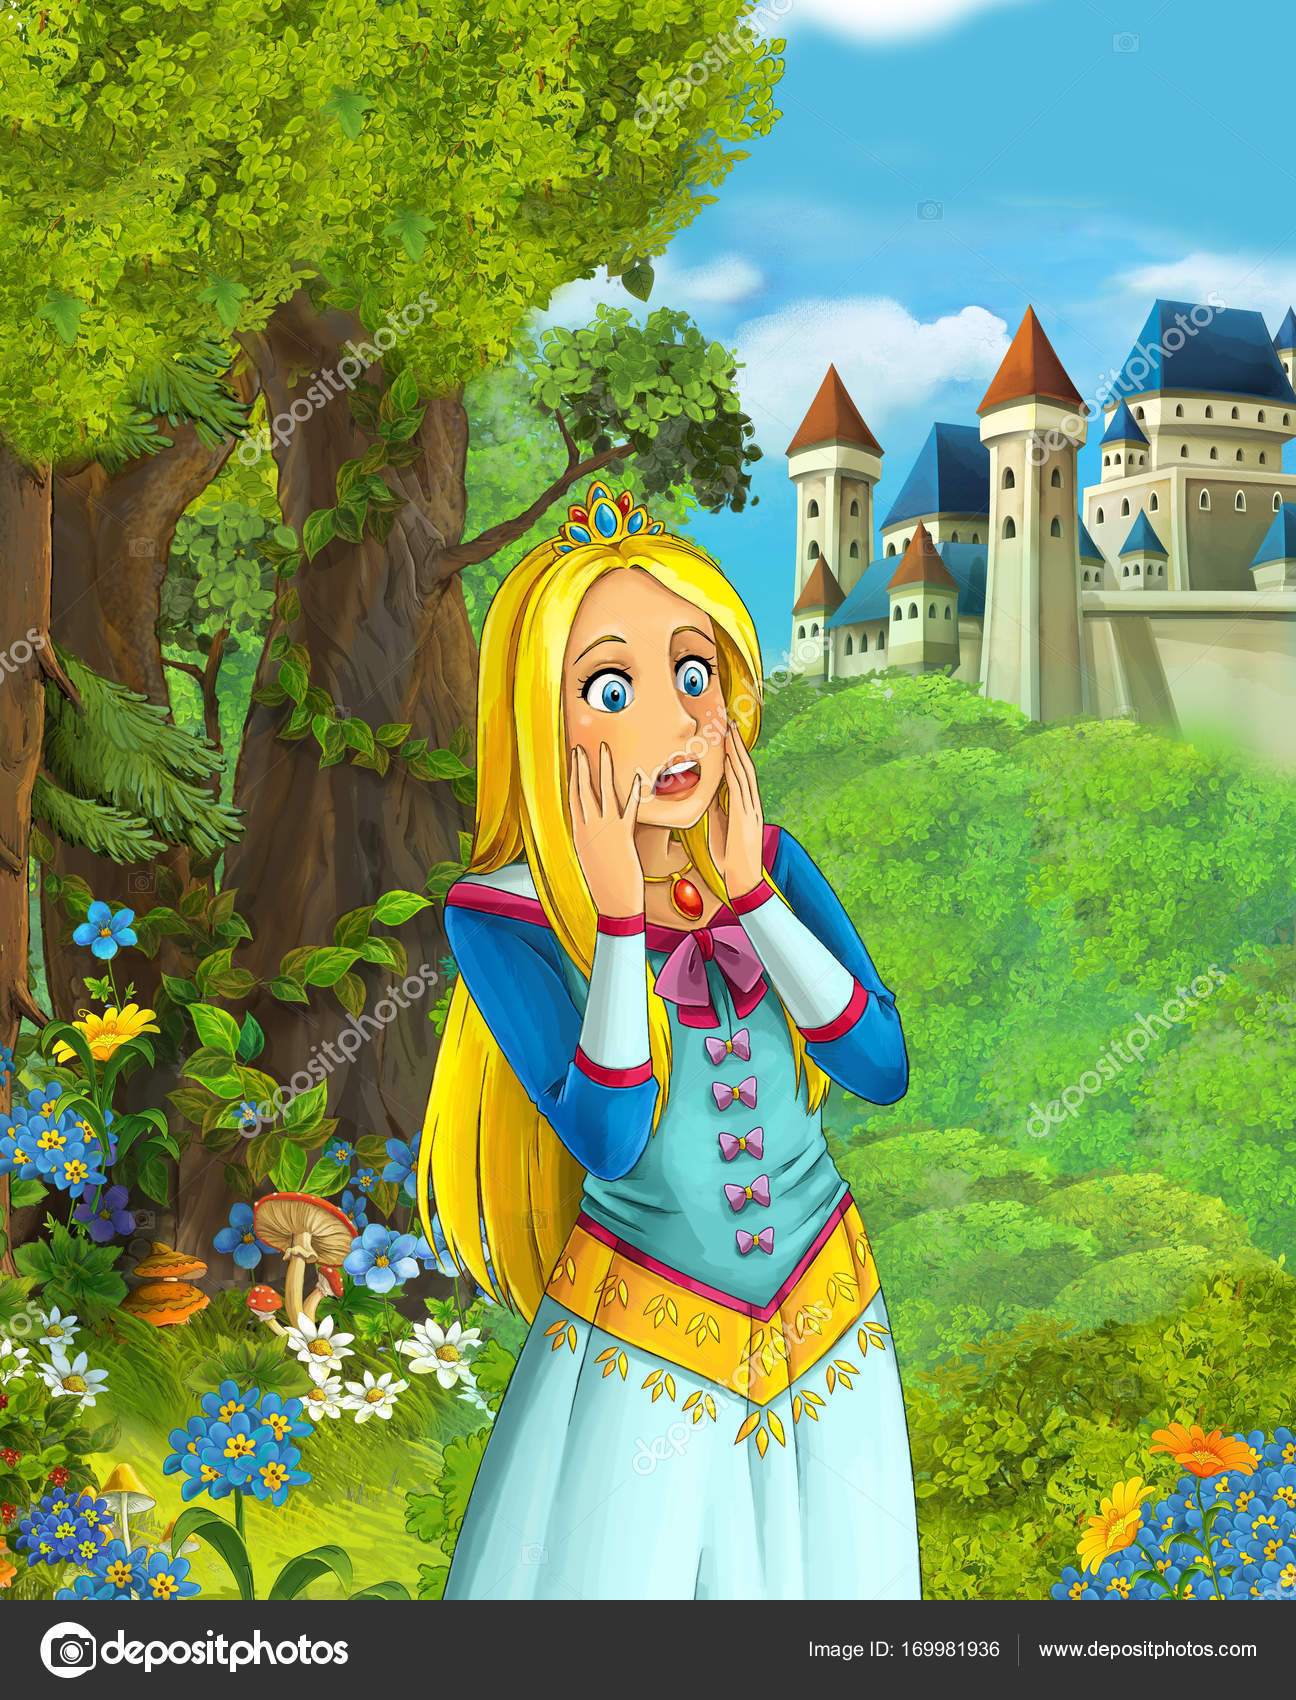 beautiful animated princess pictures impremedianet